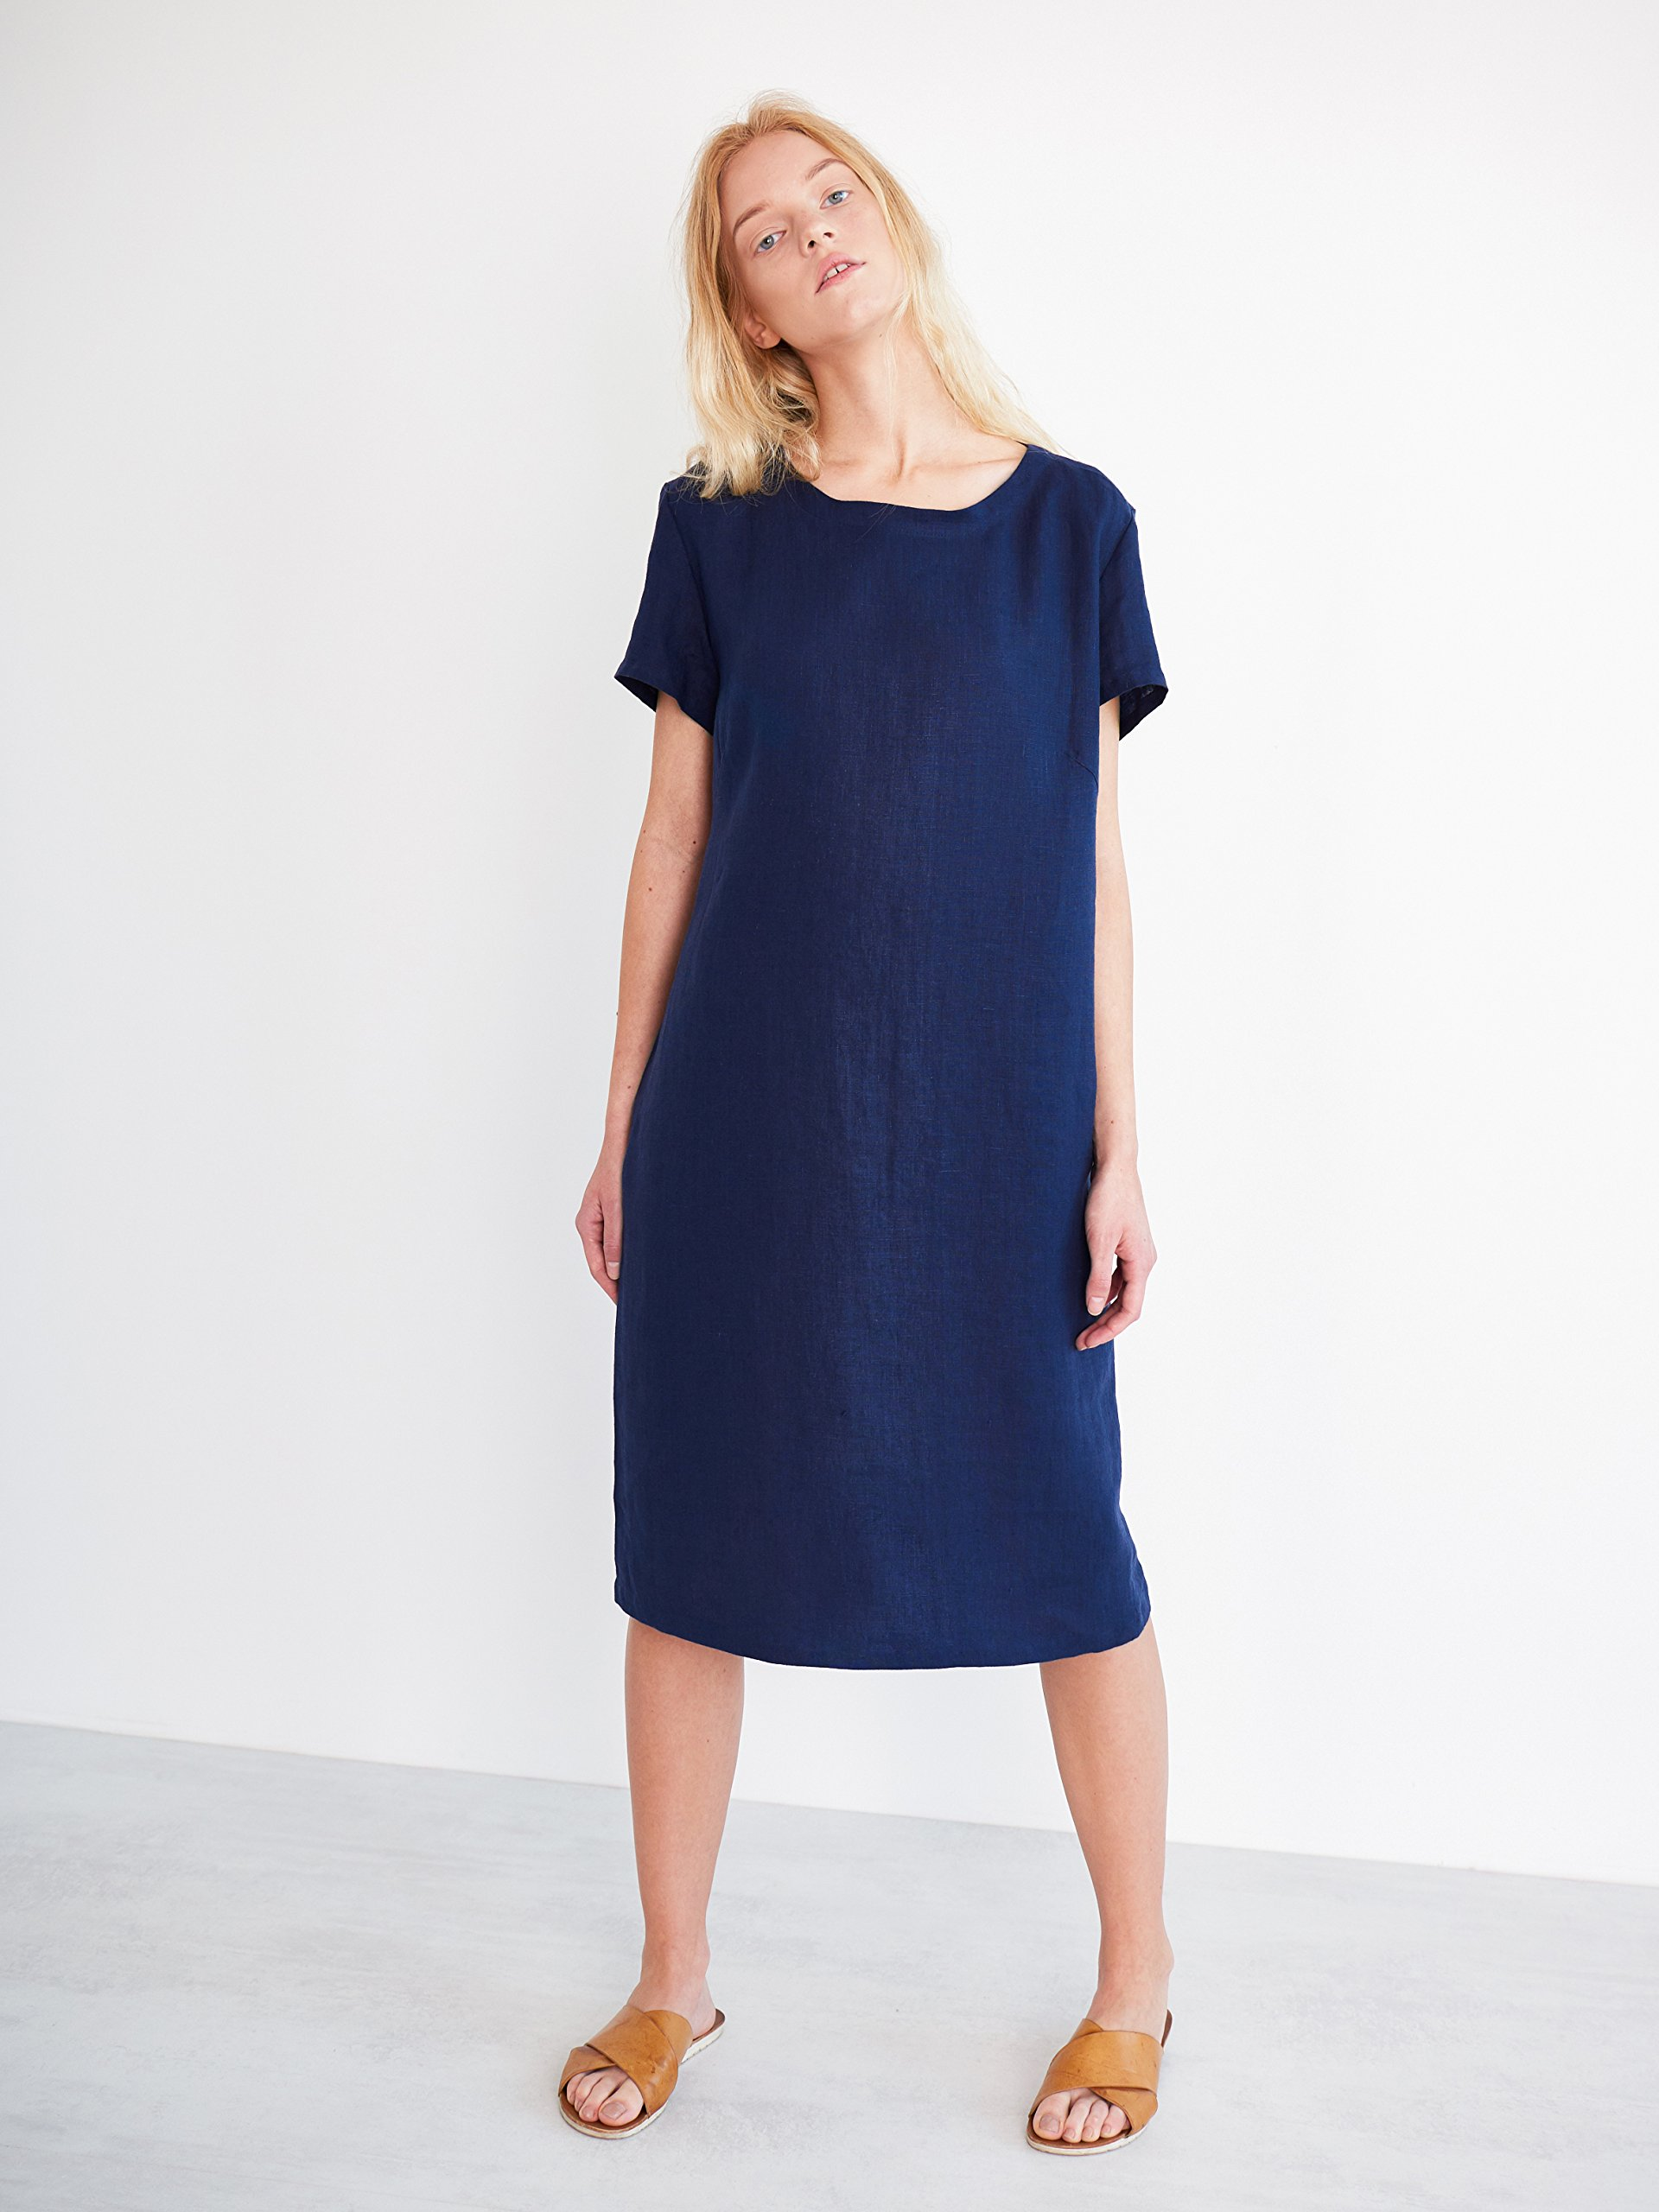 AVA Linen Tee Dress in Navy Blue Short Sleeve Simple Knee Length Summer Women Ladies Relaxed Loose Fit